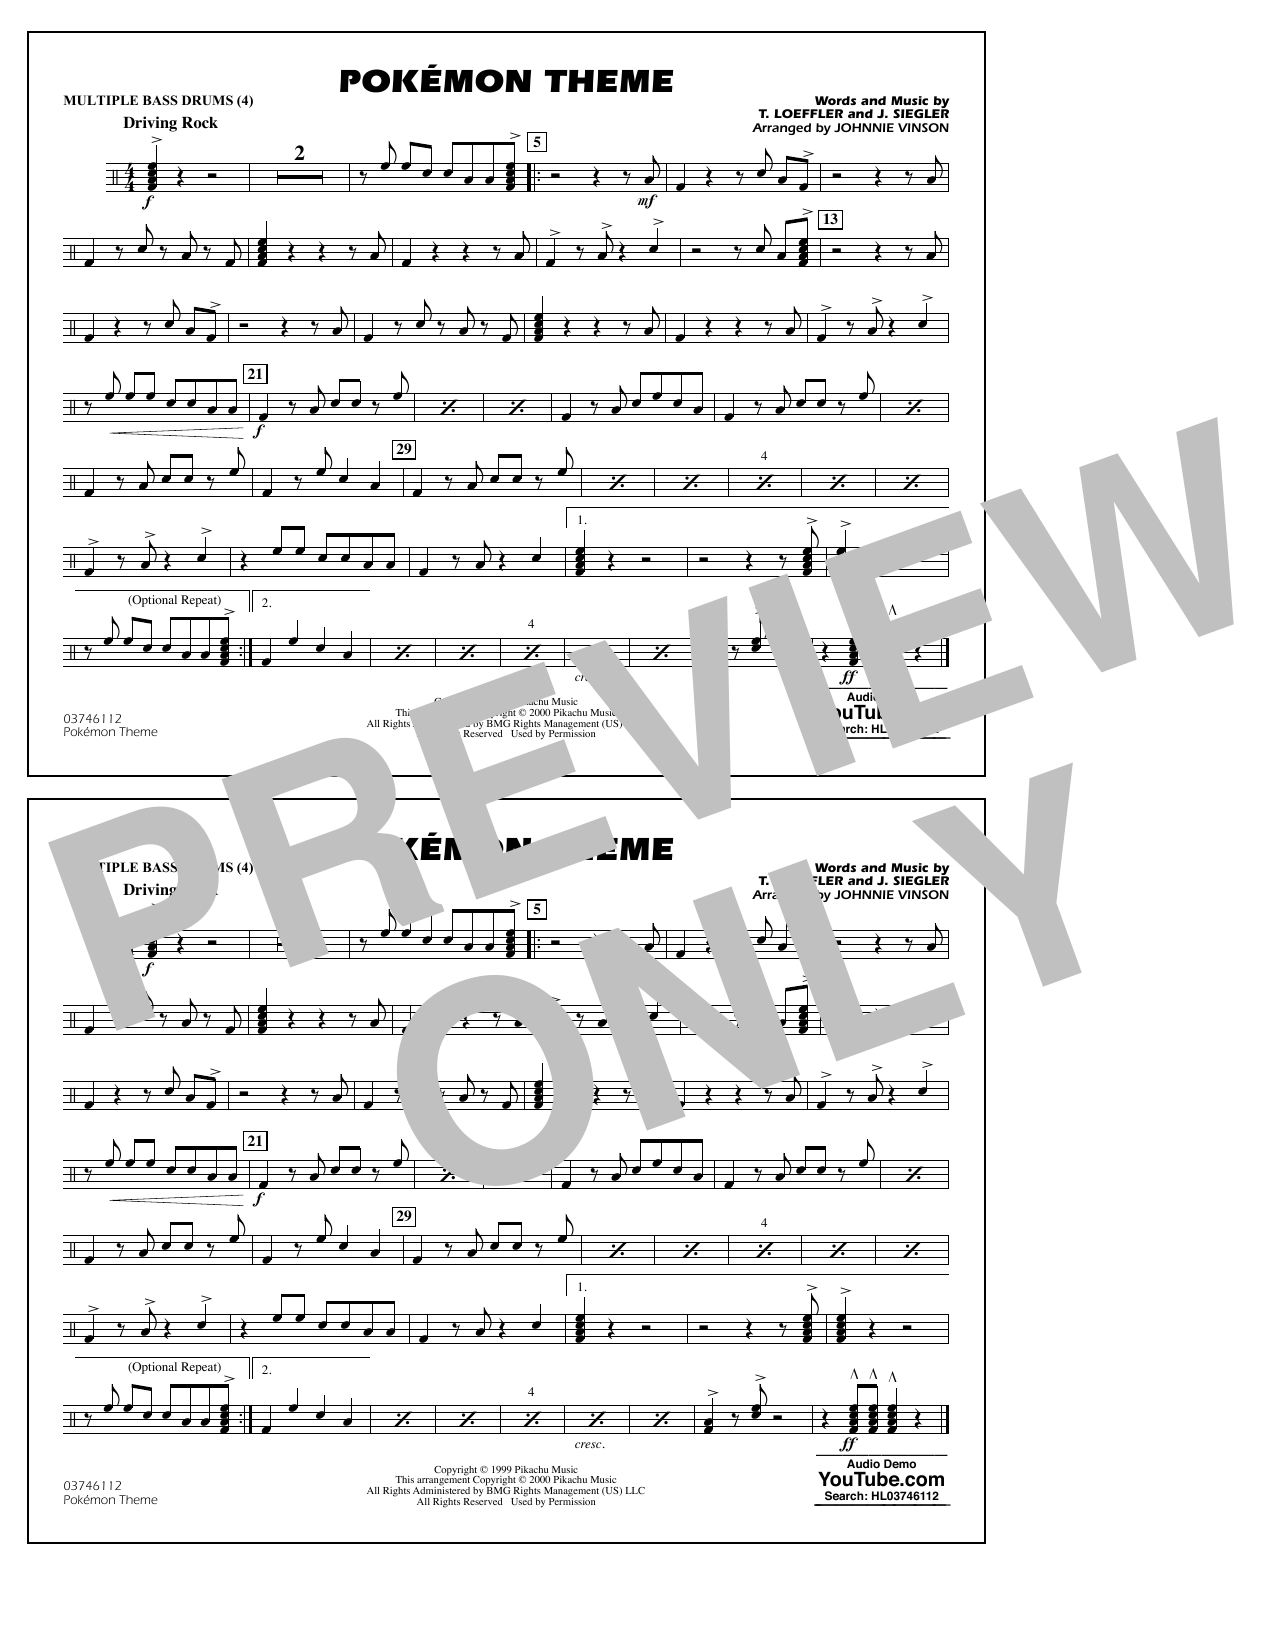 Pokémon Theme - Multiple Bass Drums Sheet Music